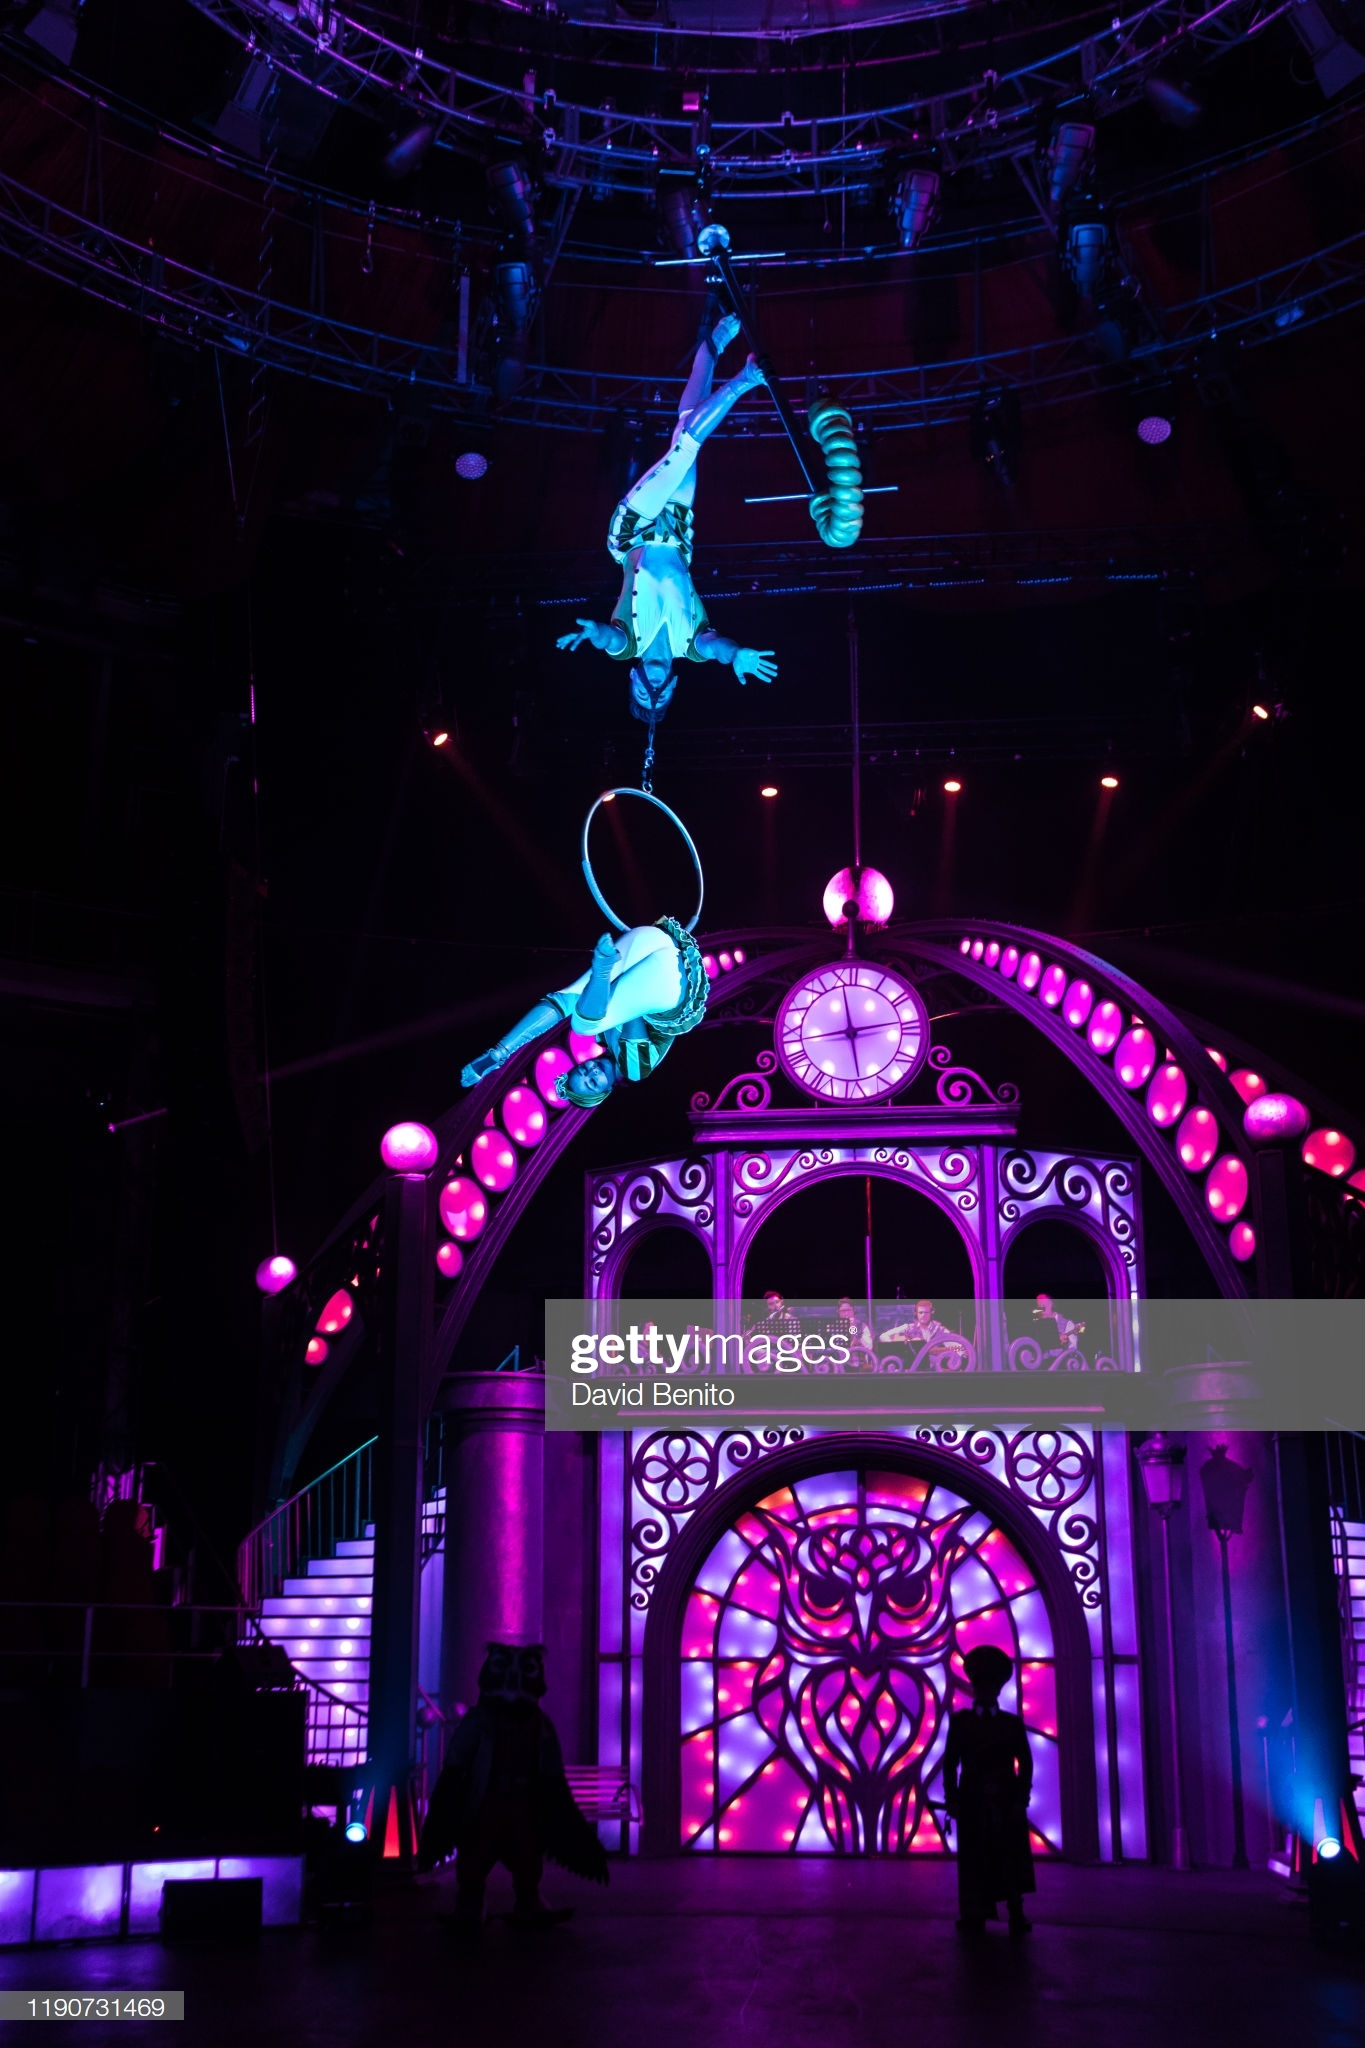 gettyimages-1190731469-2048x2048